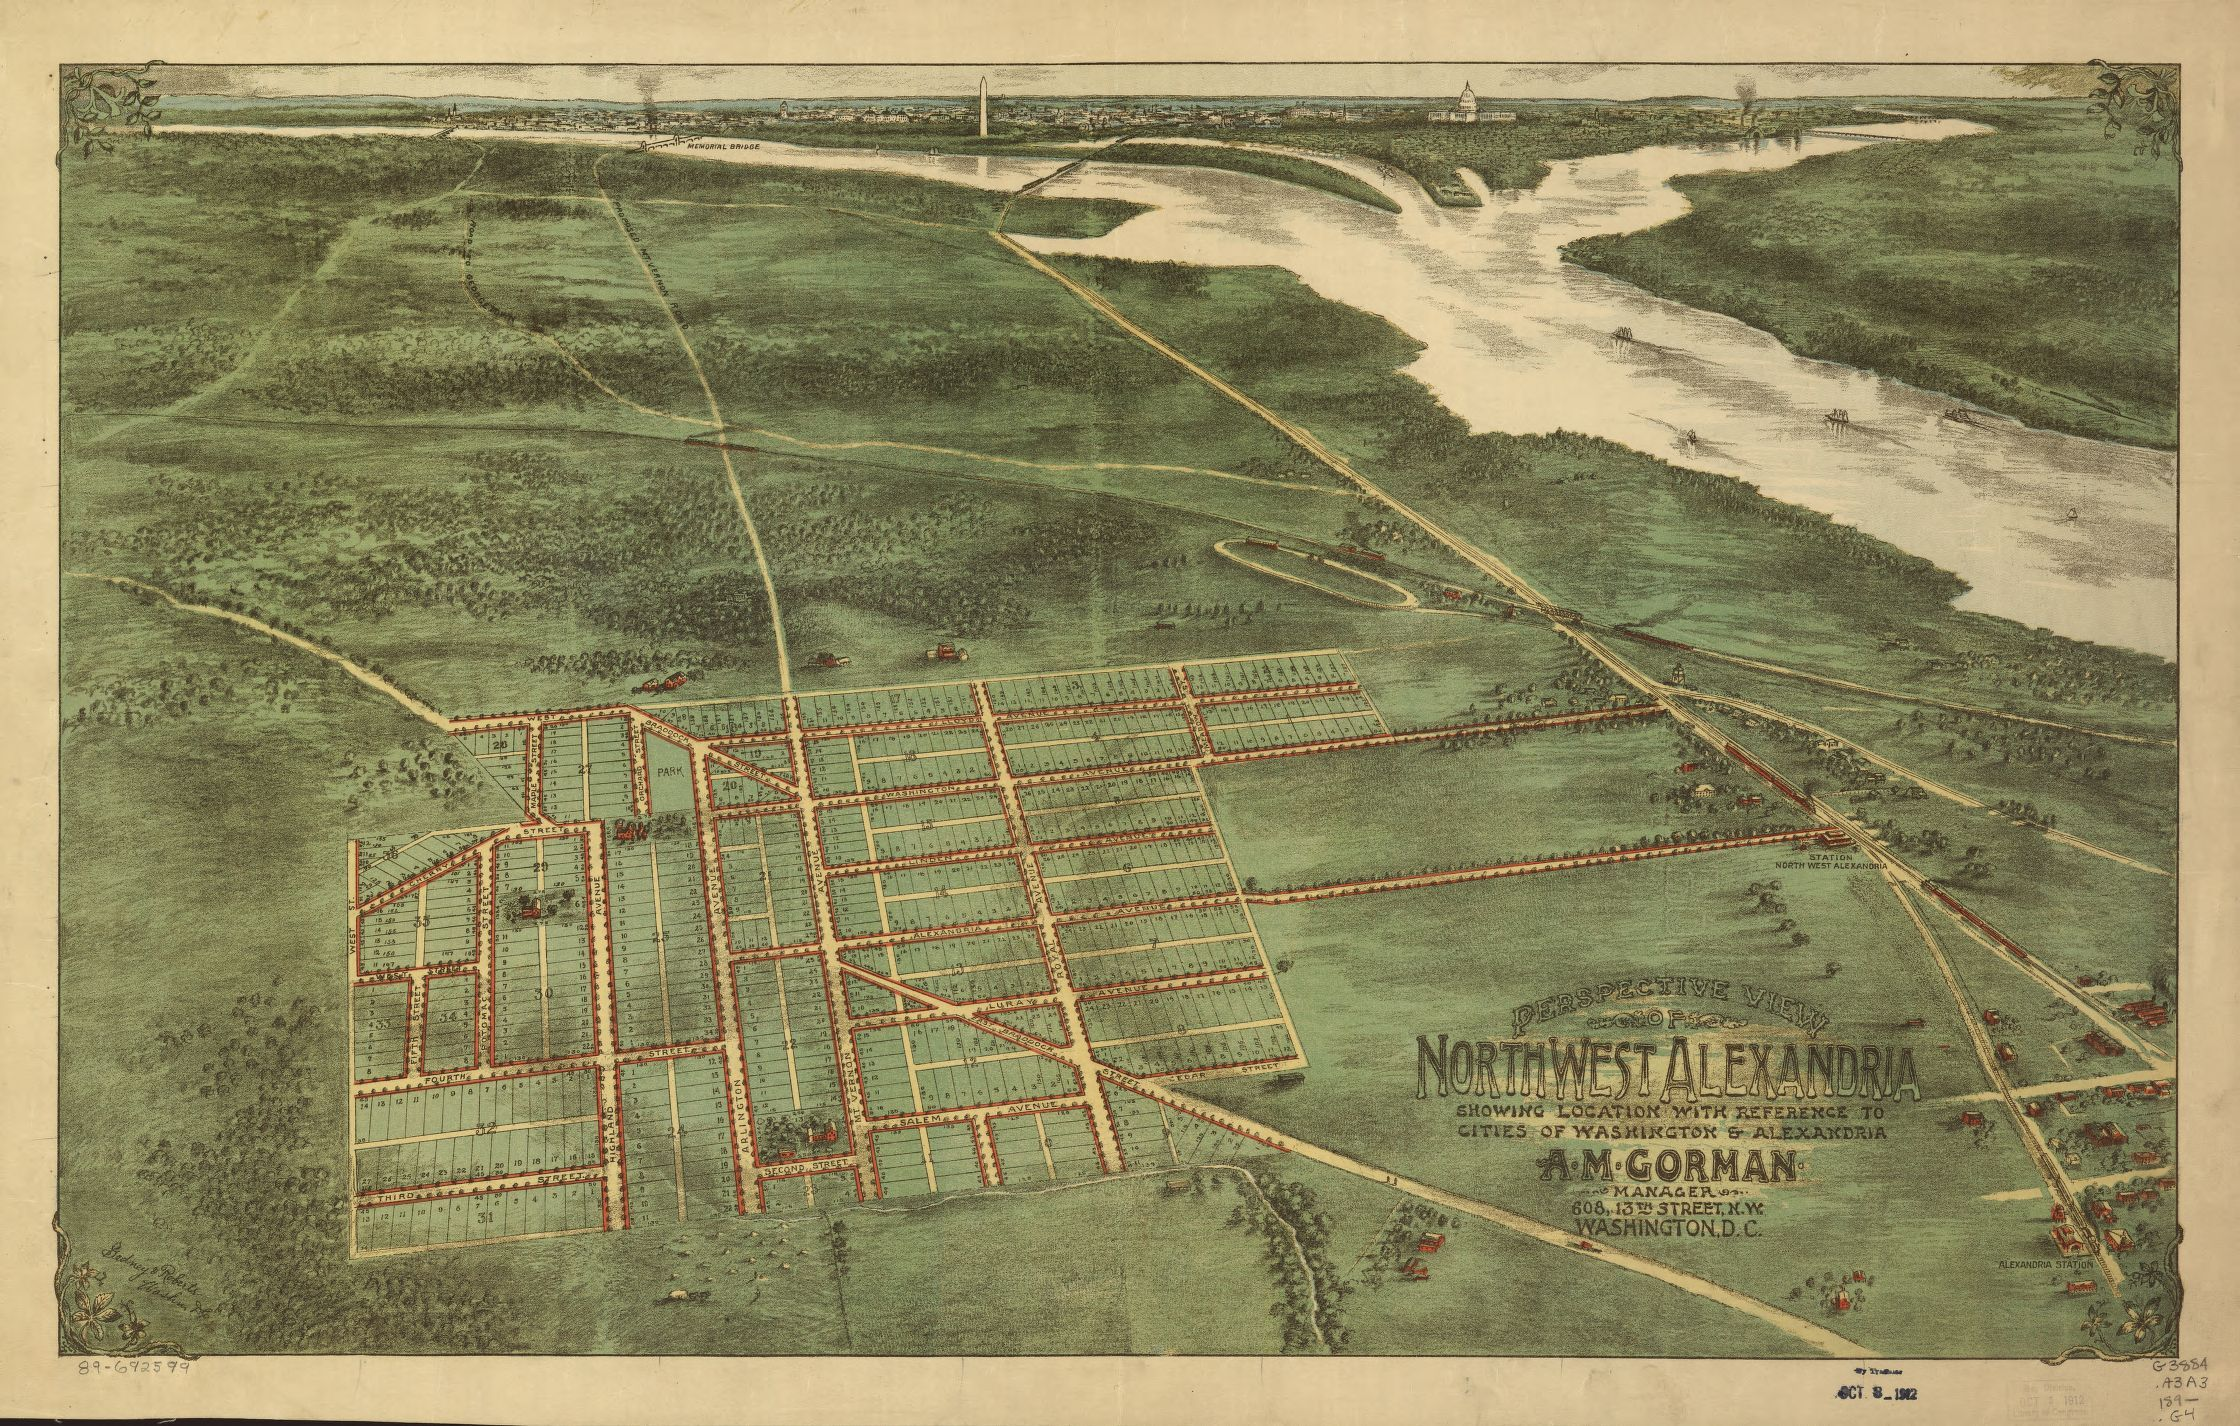 Perspective view of northwest alexandria showing location with perspective view of northwest alexandria showing location with reference to cities of washington alexandria alexandria virginiamap sciox Image collections